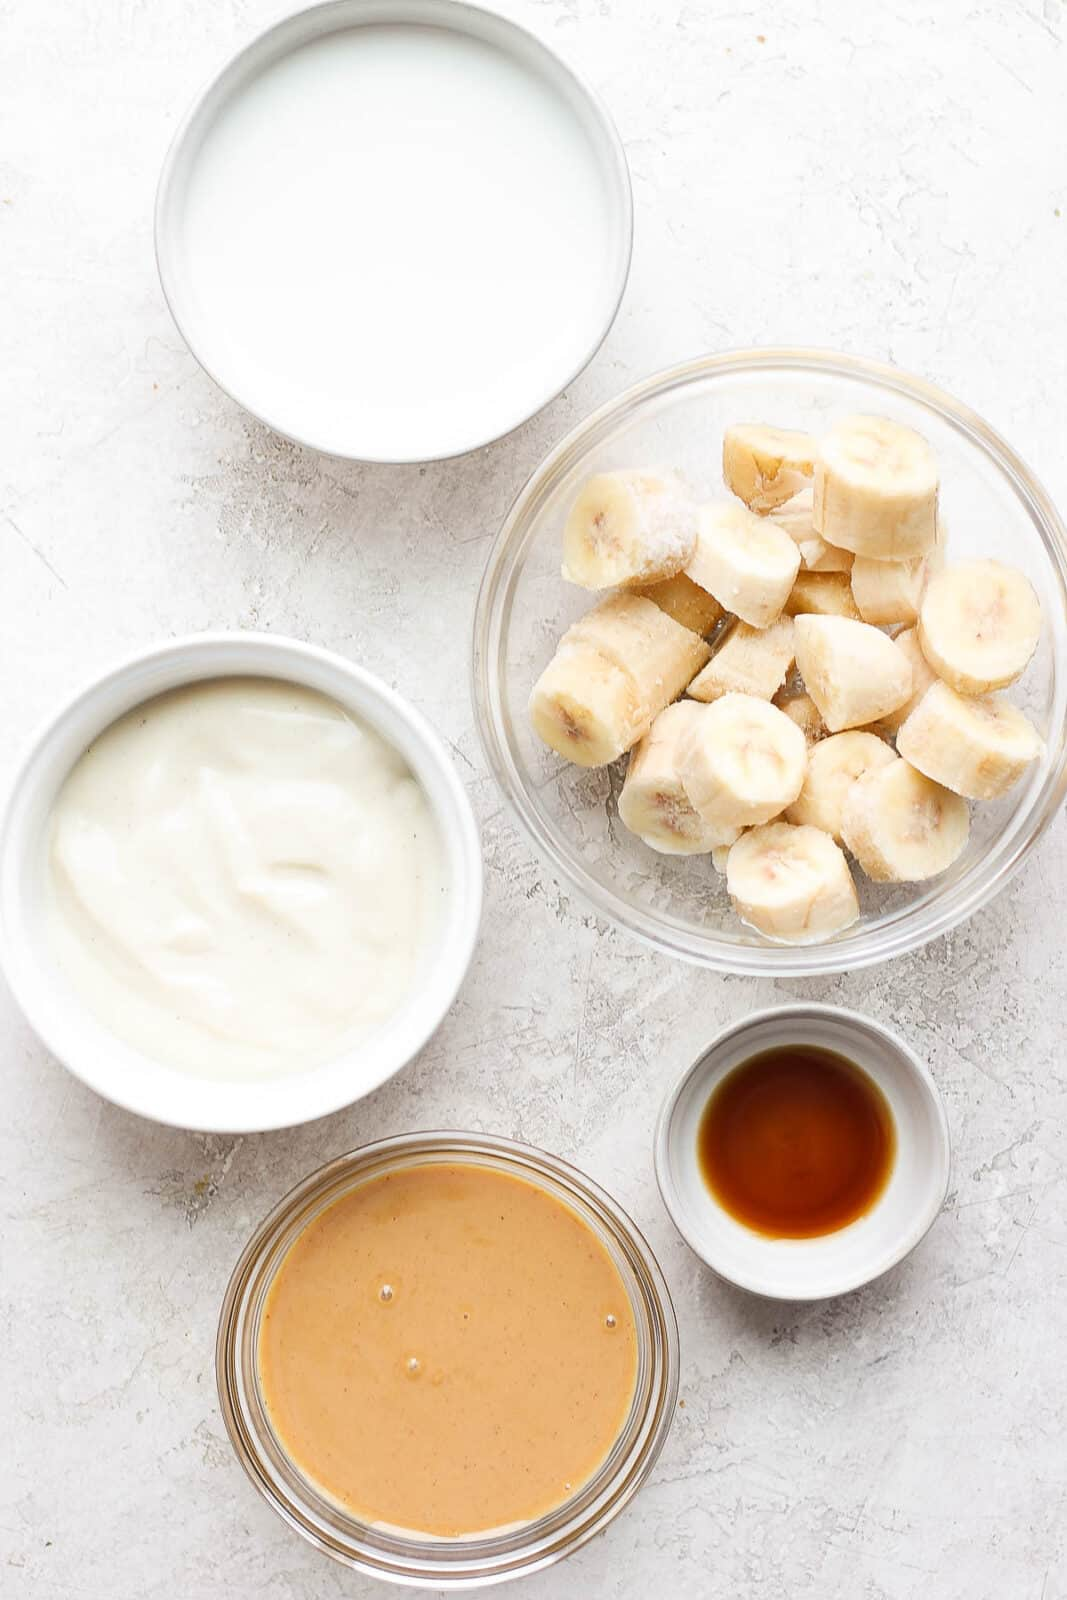 Peanut butter banana smoothie ingredients in small dishes.